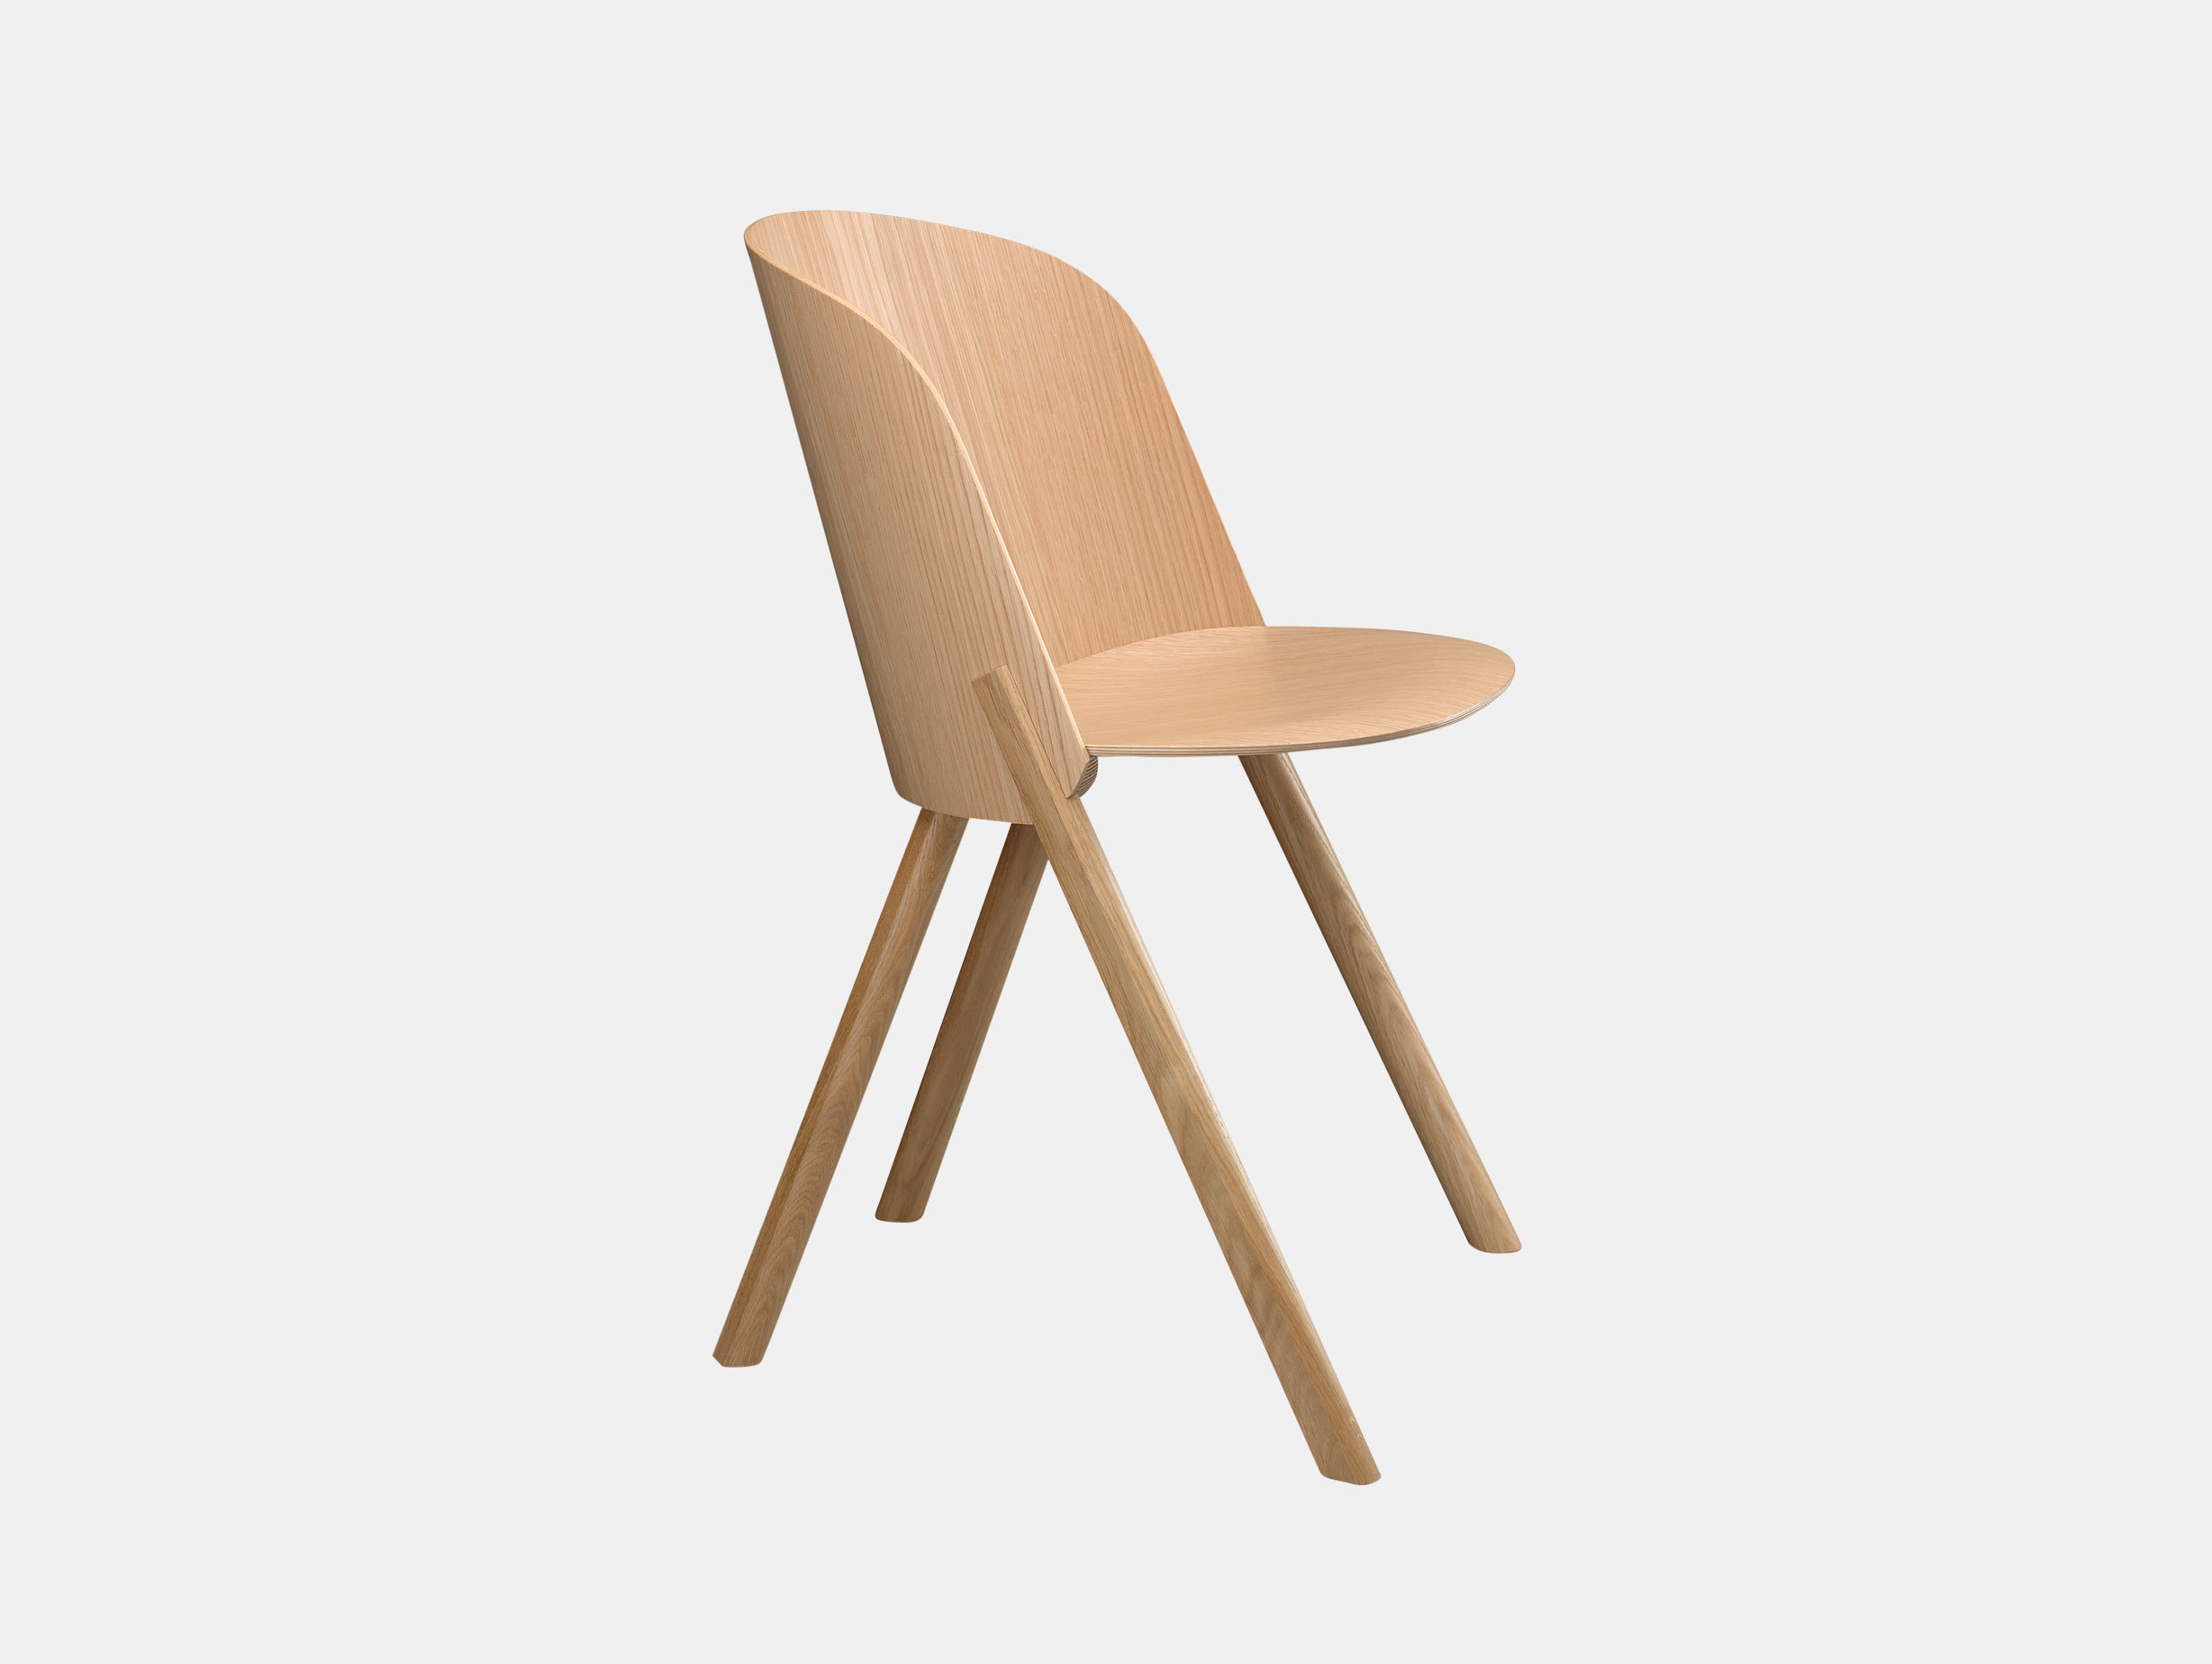 This Chair image 4